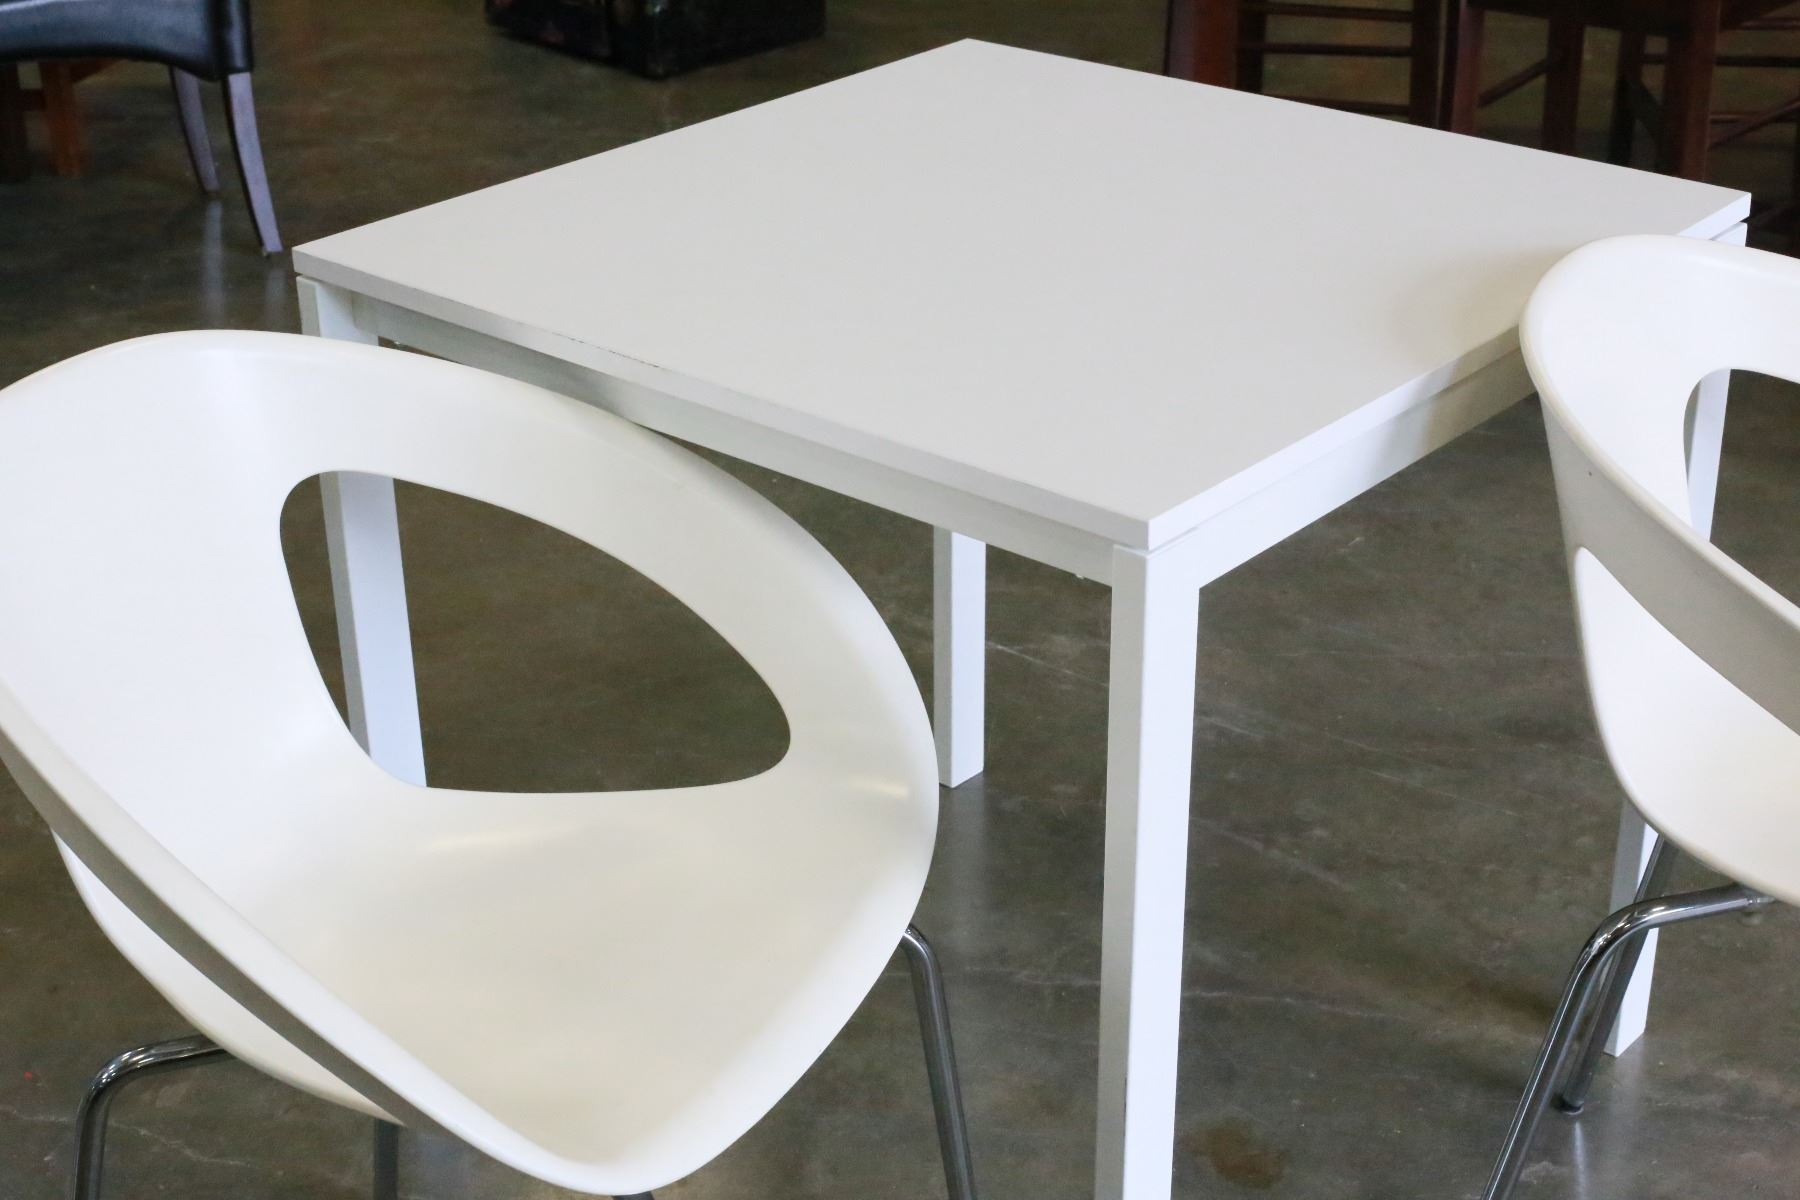 ikea metal chairs armed dining white apart size table with two plastic and